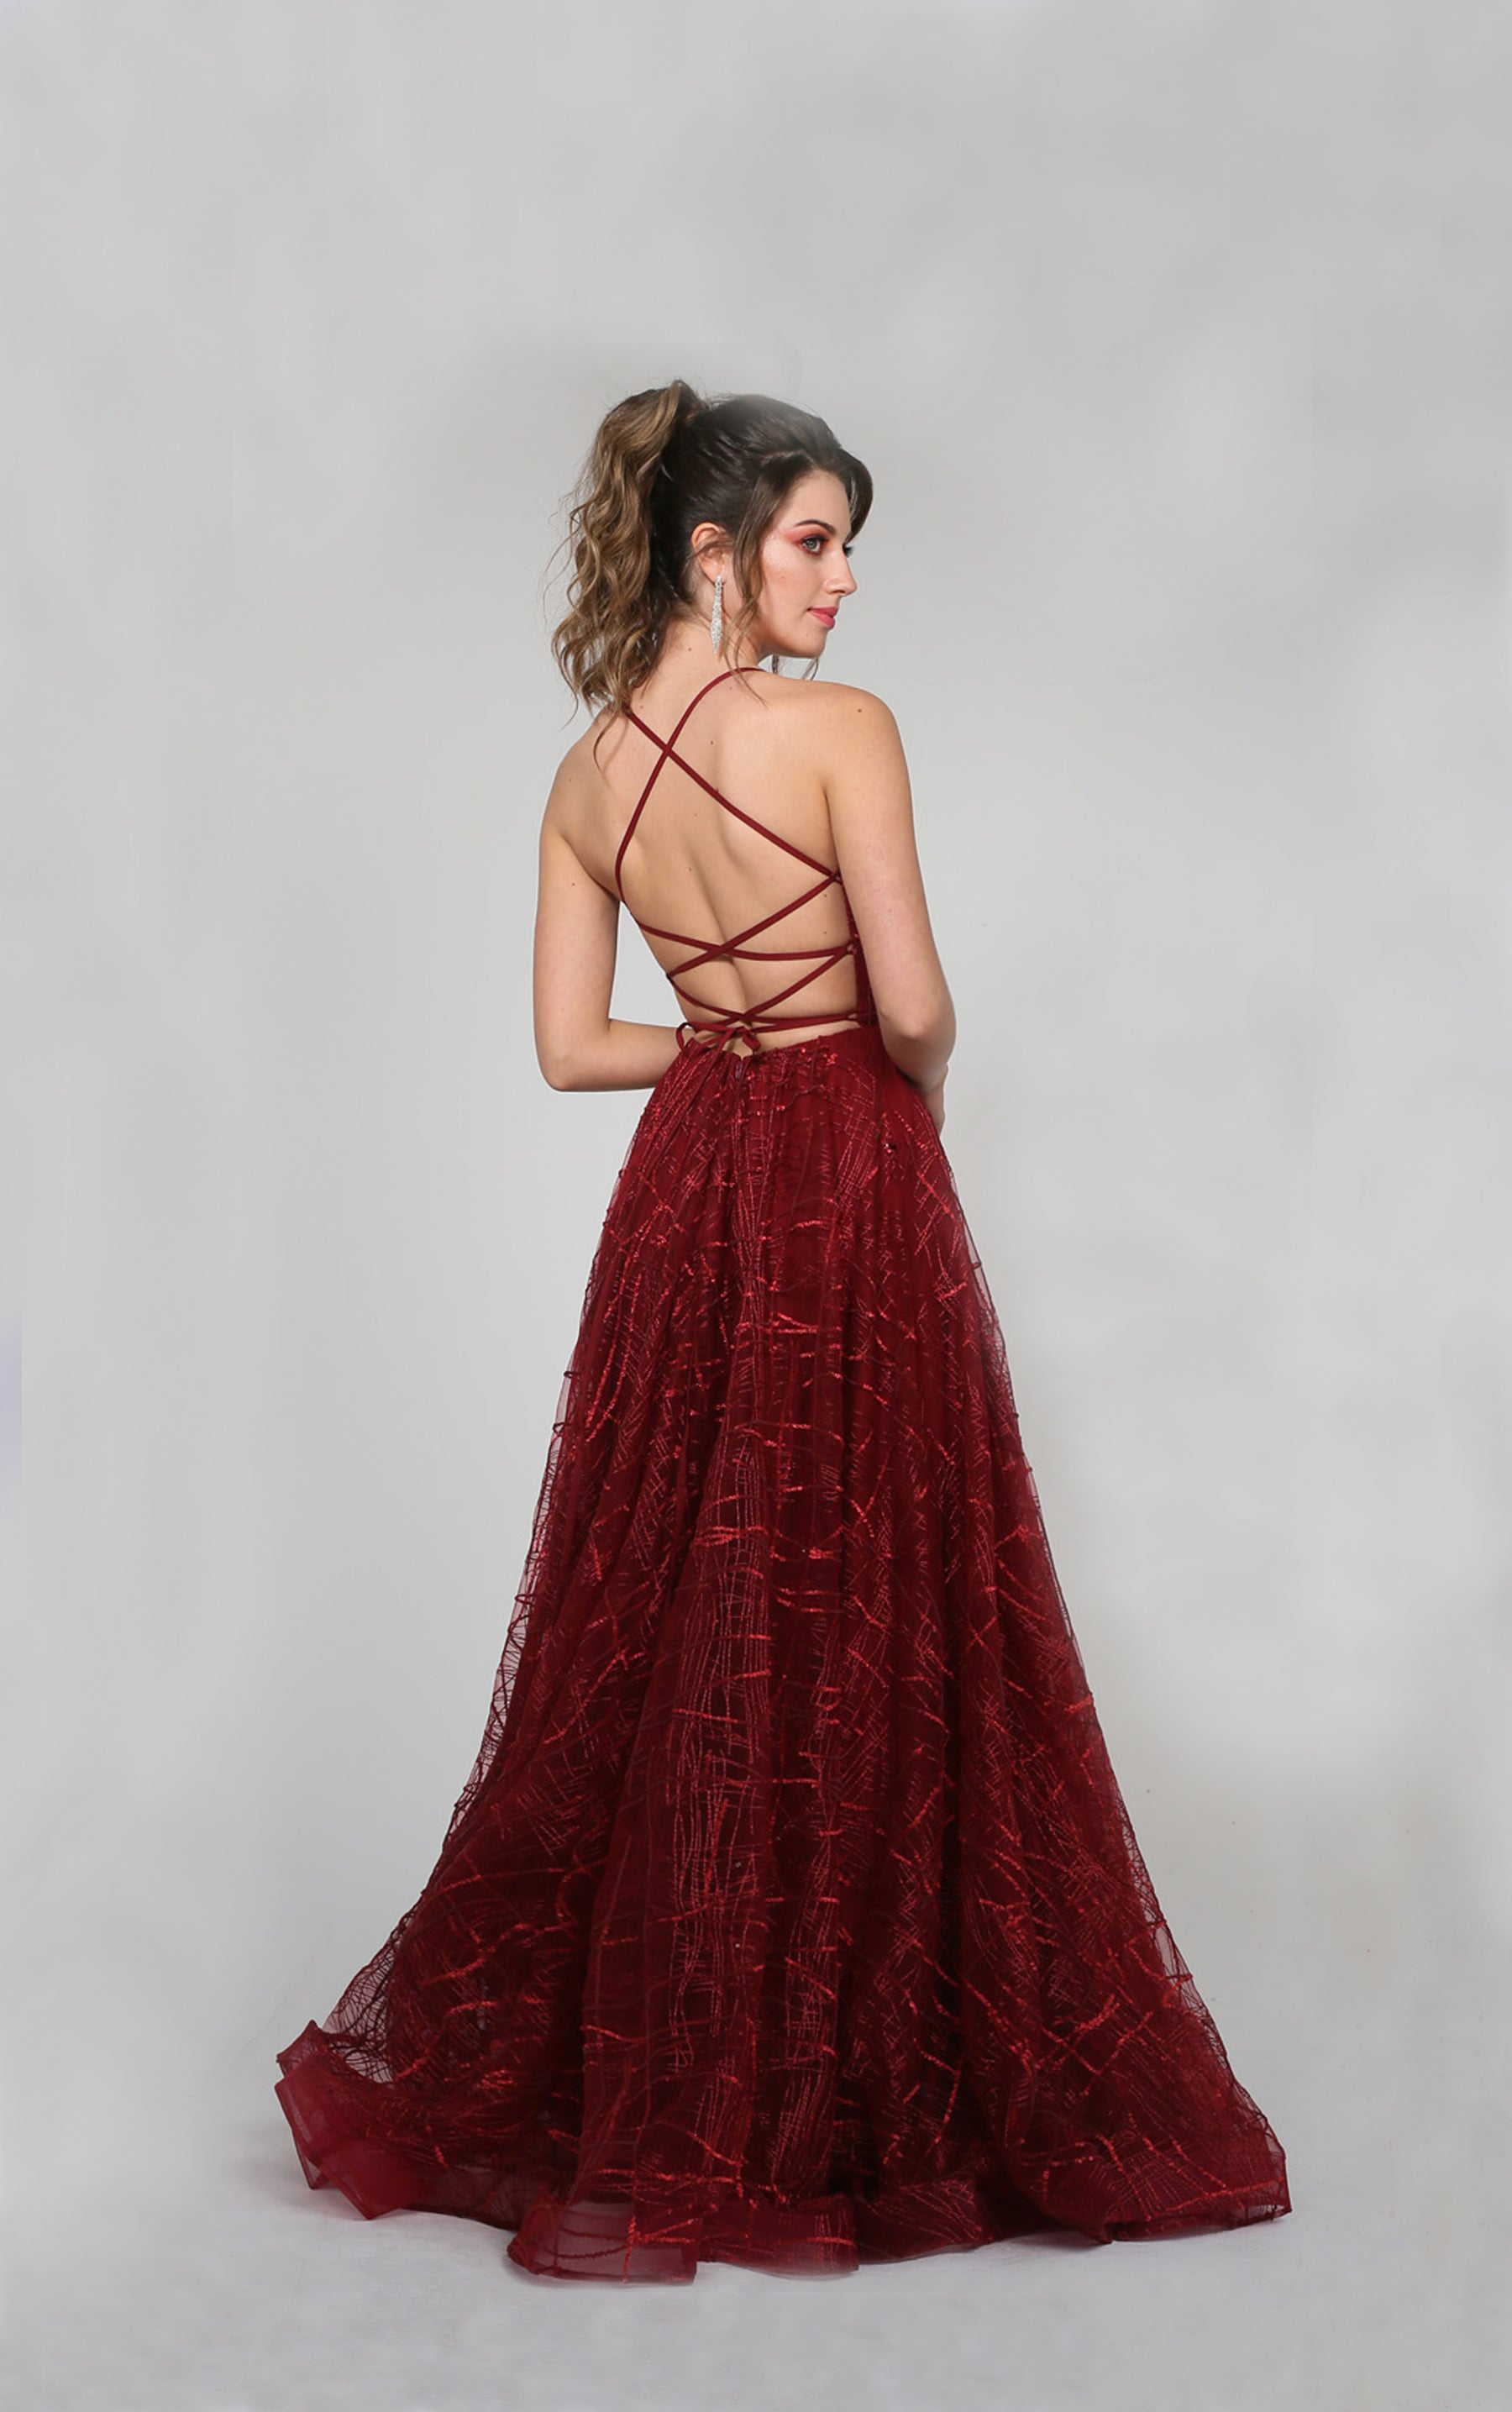 H Aphro Maroon Flare Gown